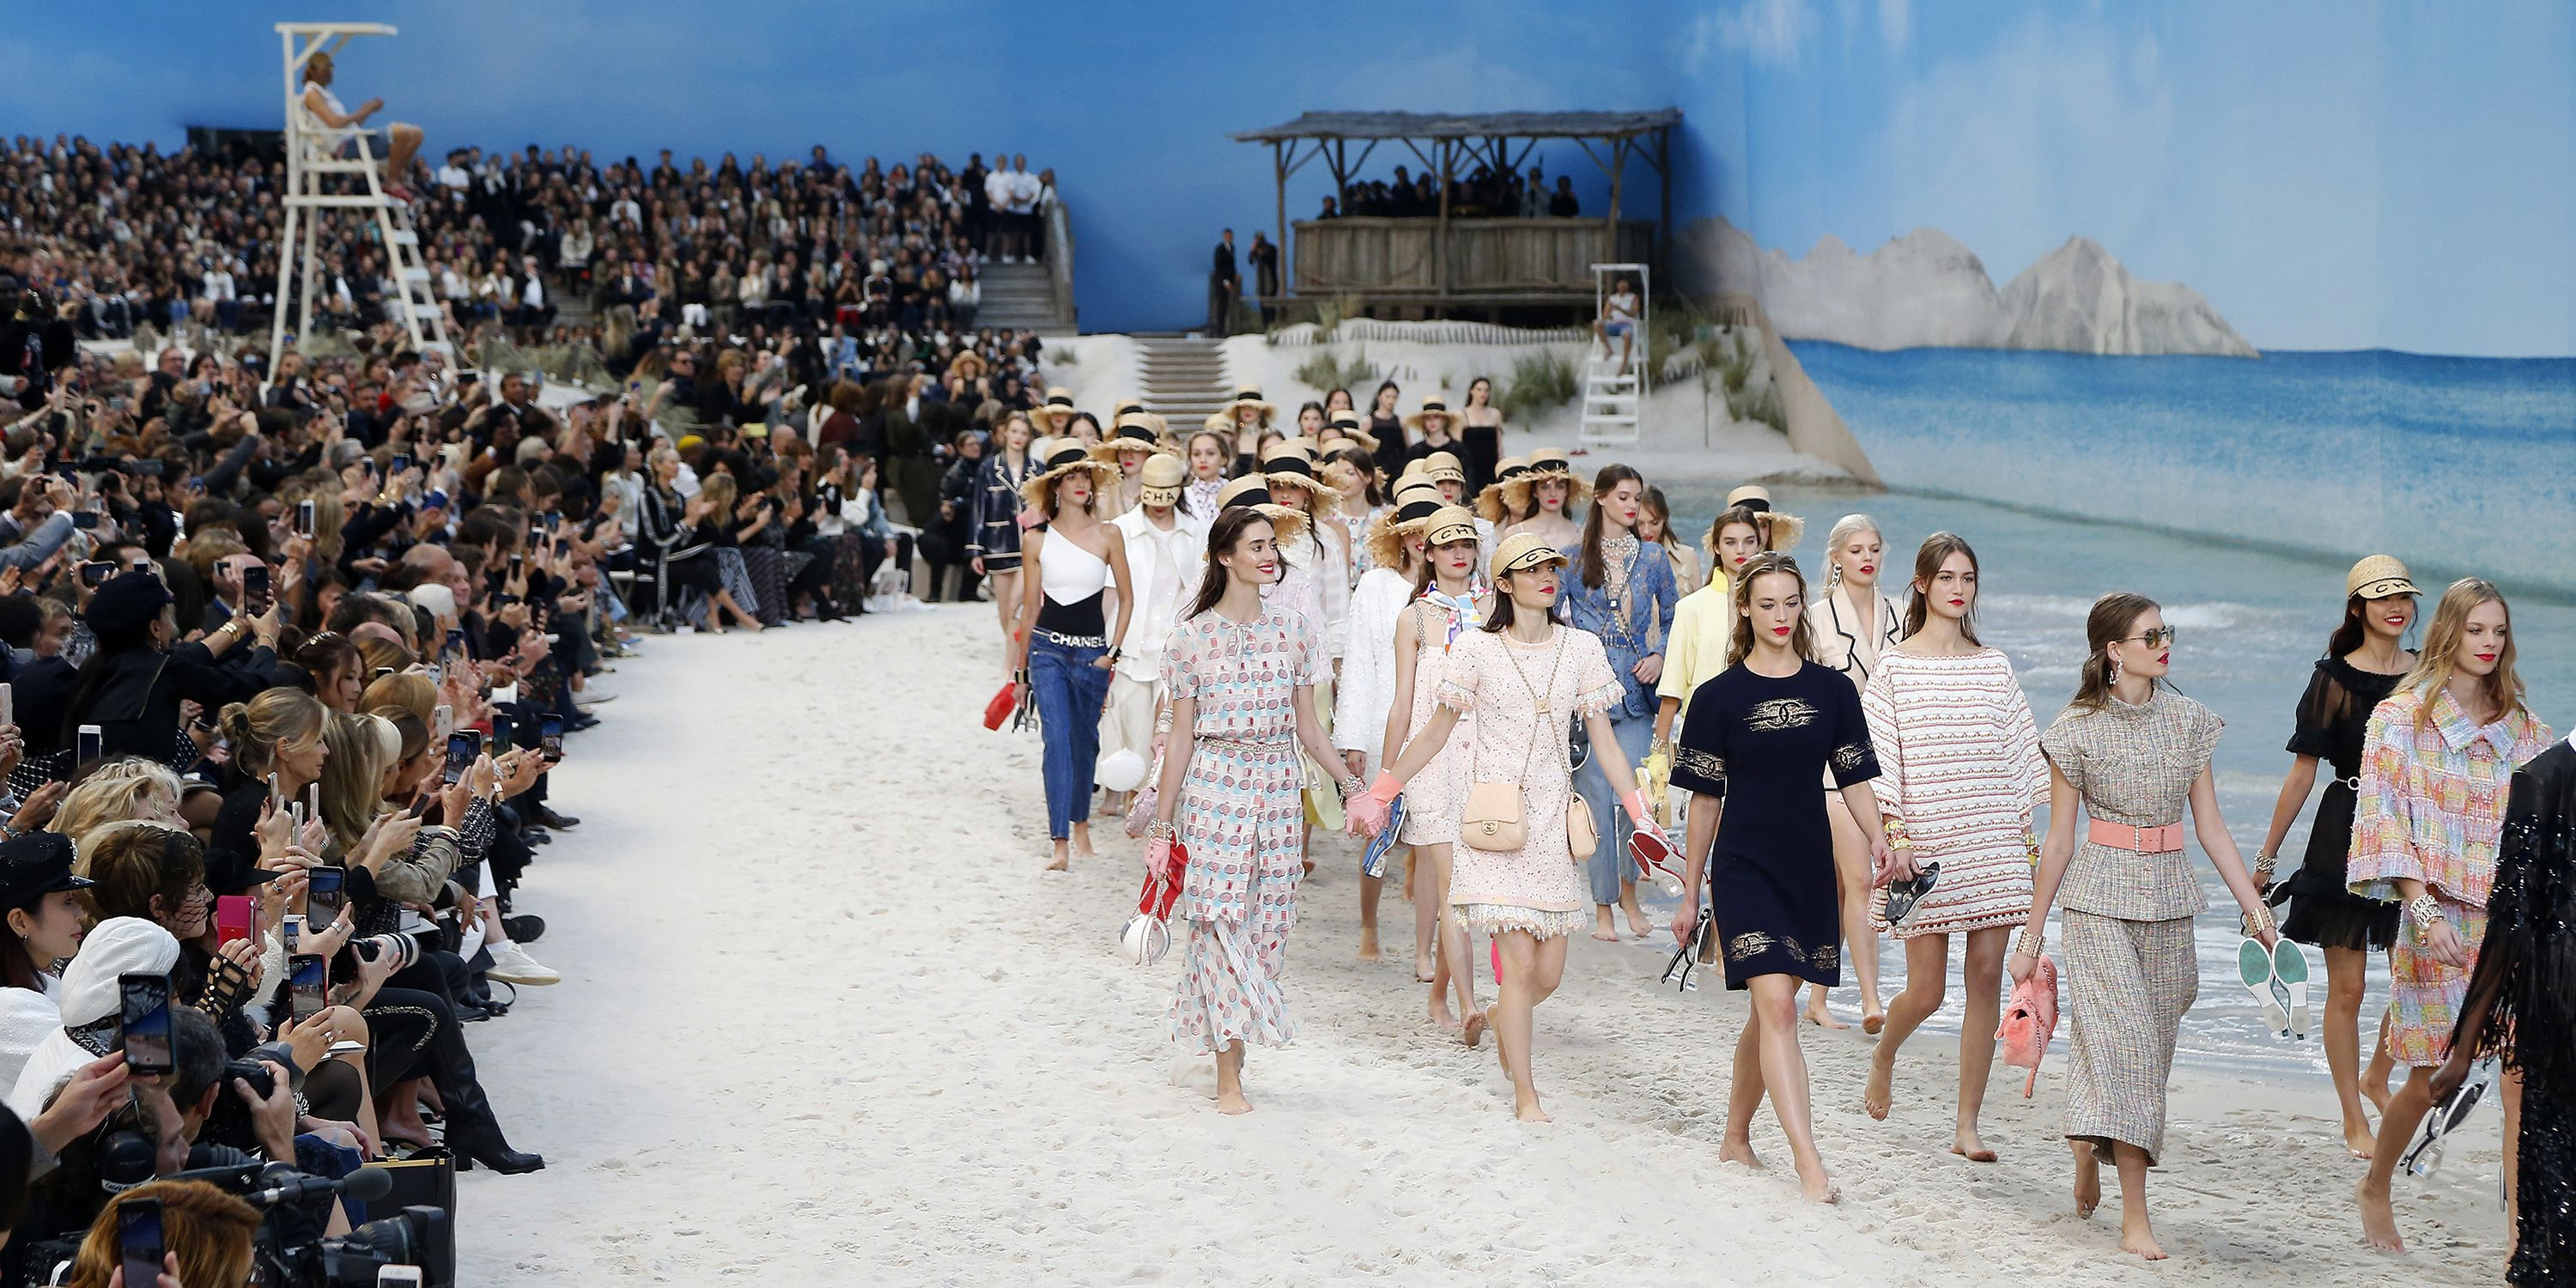 Chanel S Spring 2019 Runway Was A Beach With An Ocean And Lifeguard